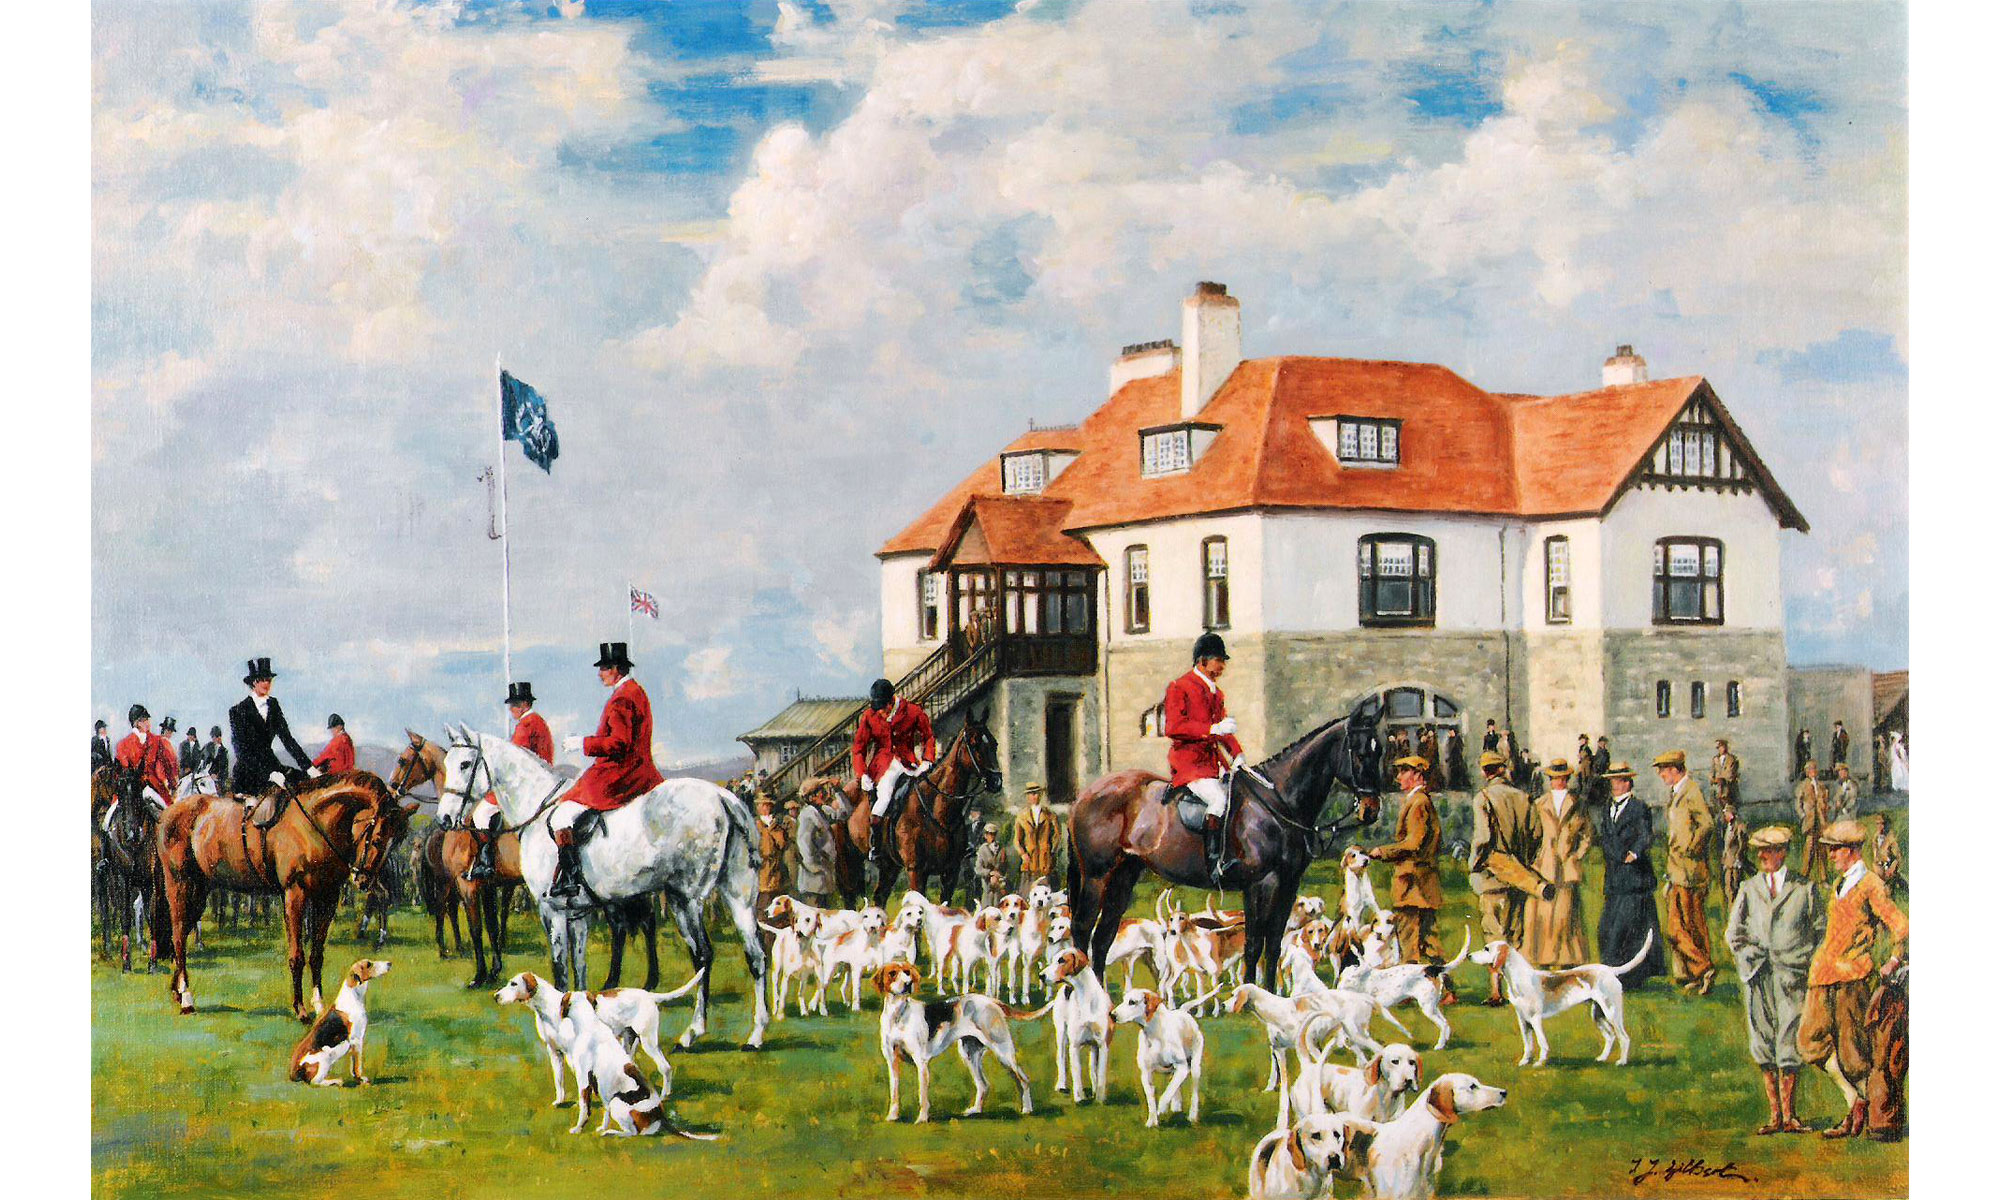 County Down Golf Club Hunting Painting by Terence J Gilbert Oil on Canvas